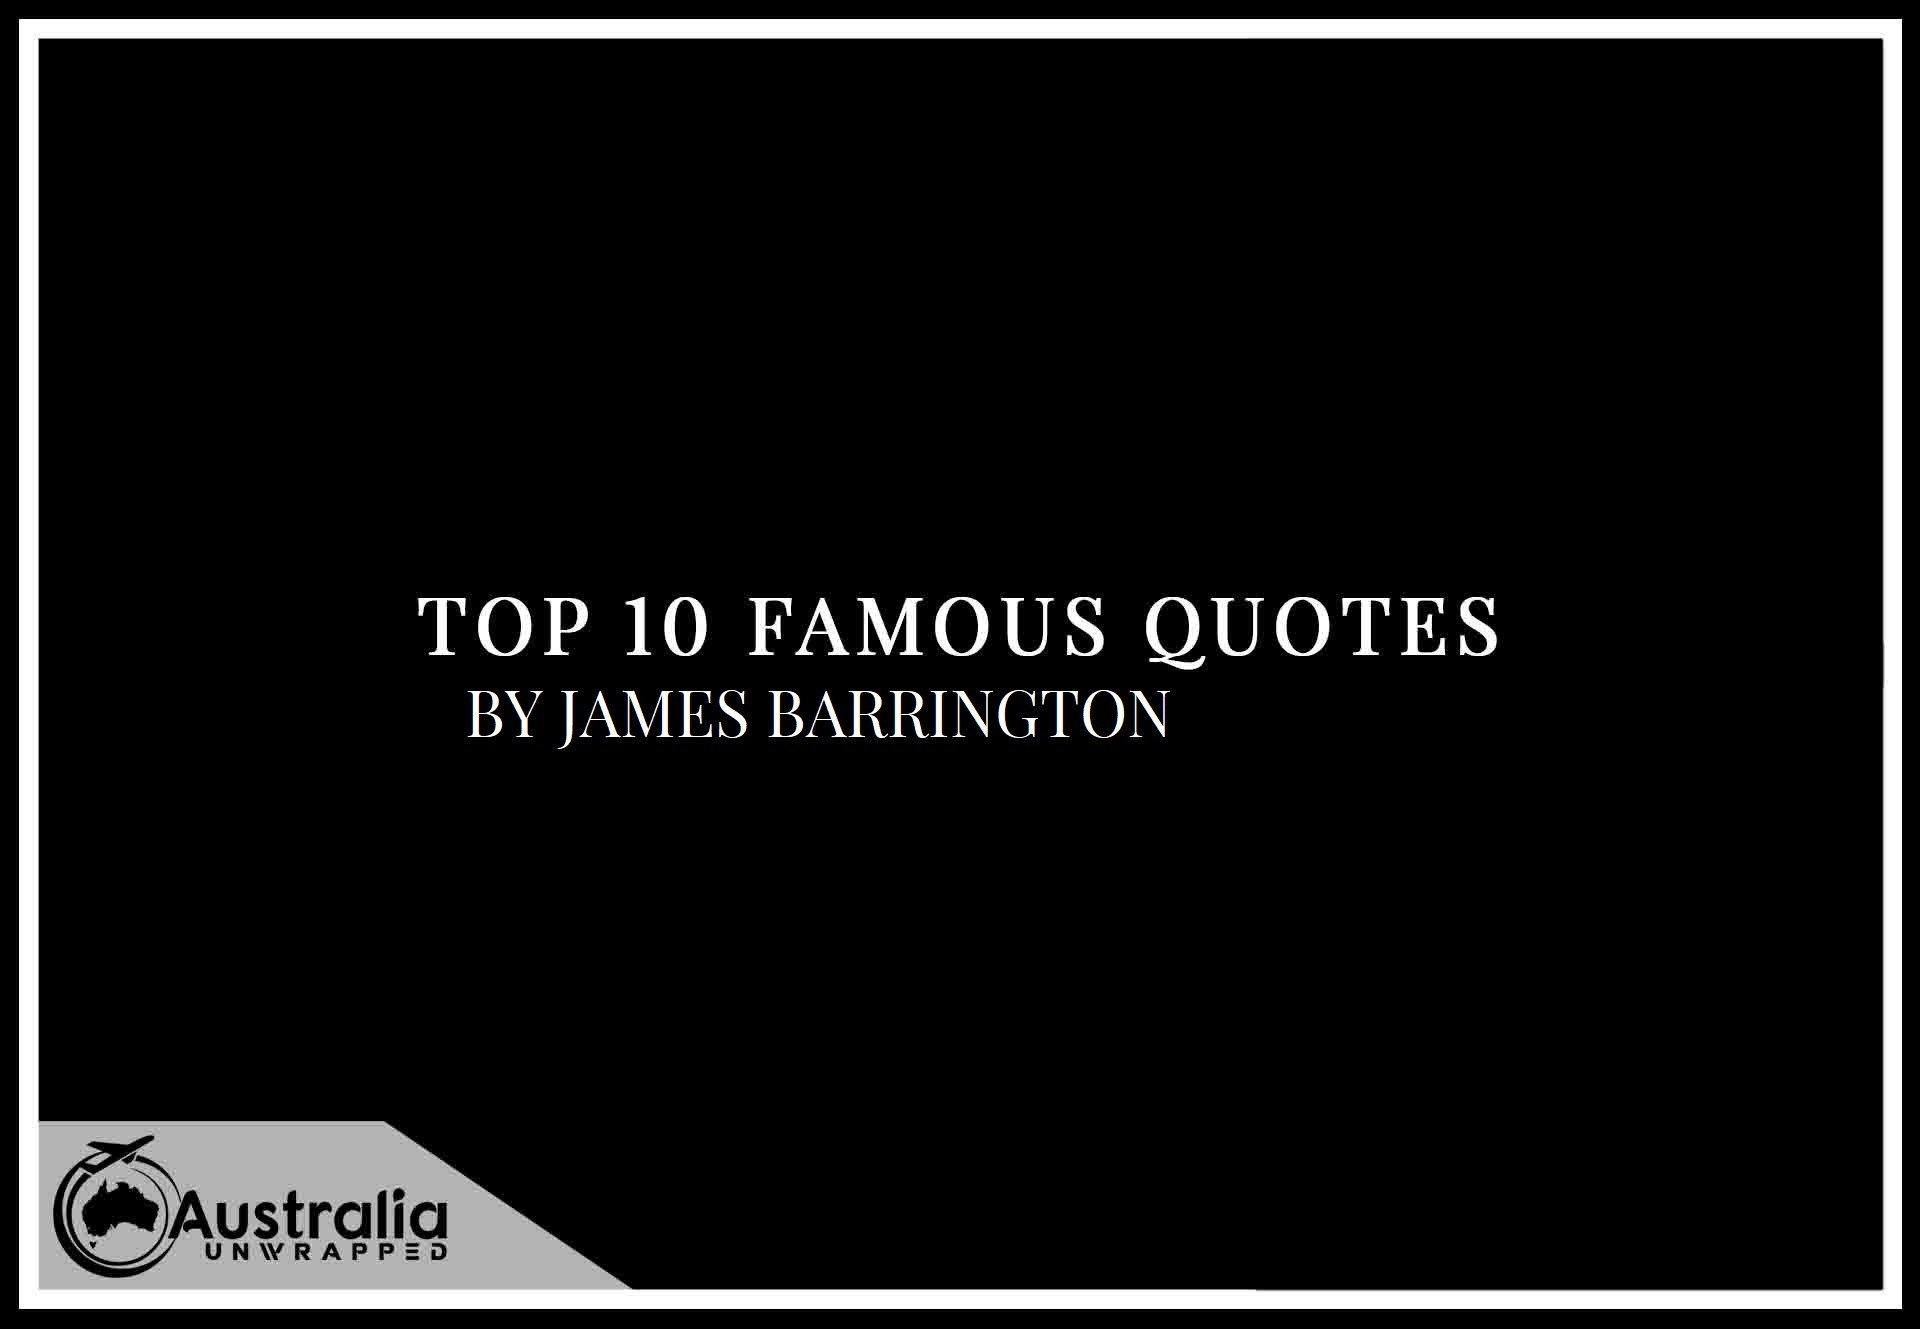 Top 10 Famous Quotes by Author James Barrington